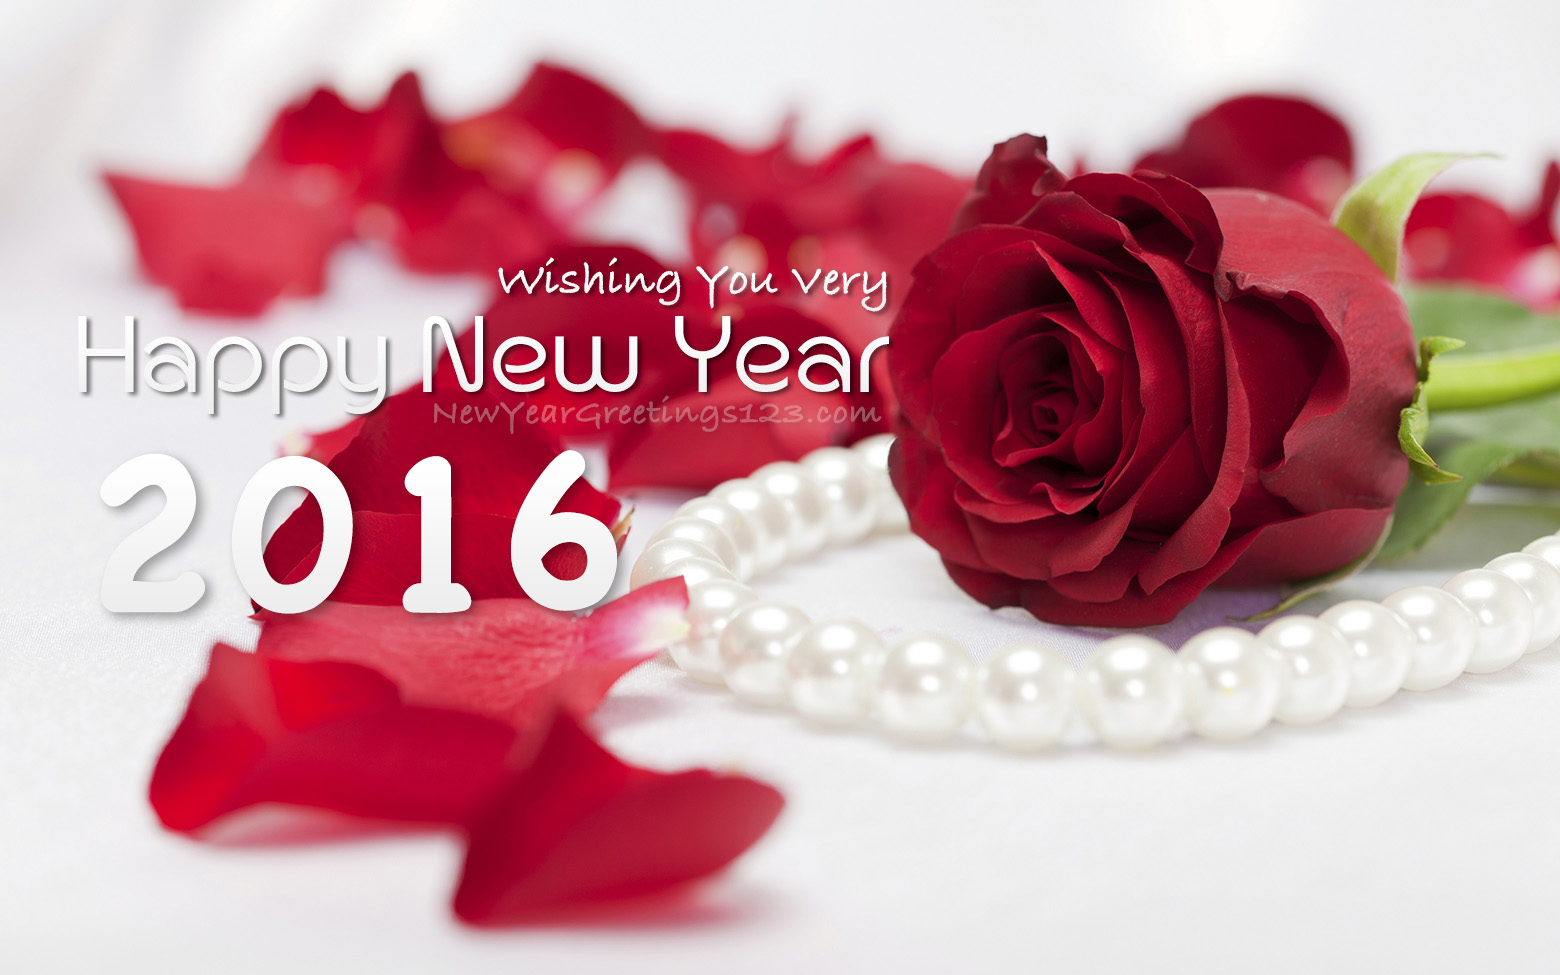 wishing you very happy new year 2016 red rose petals